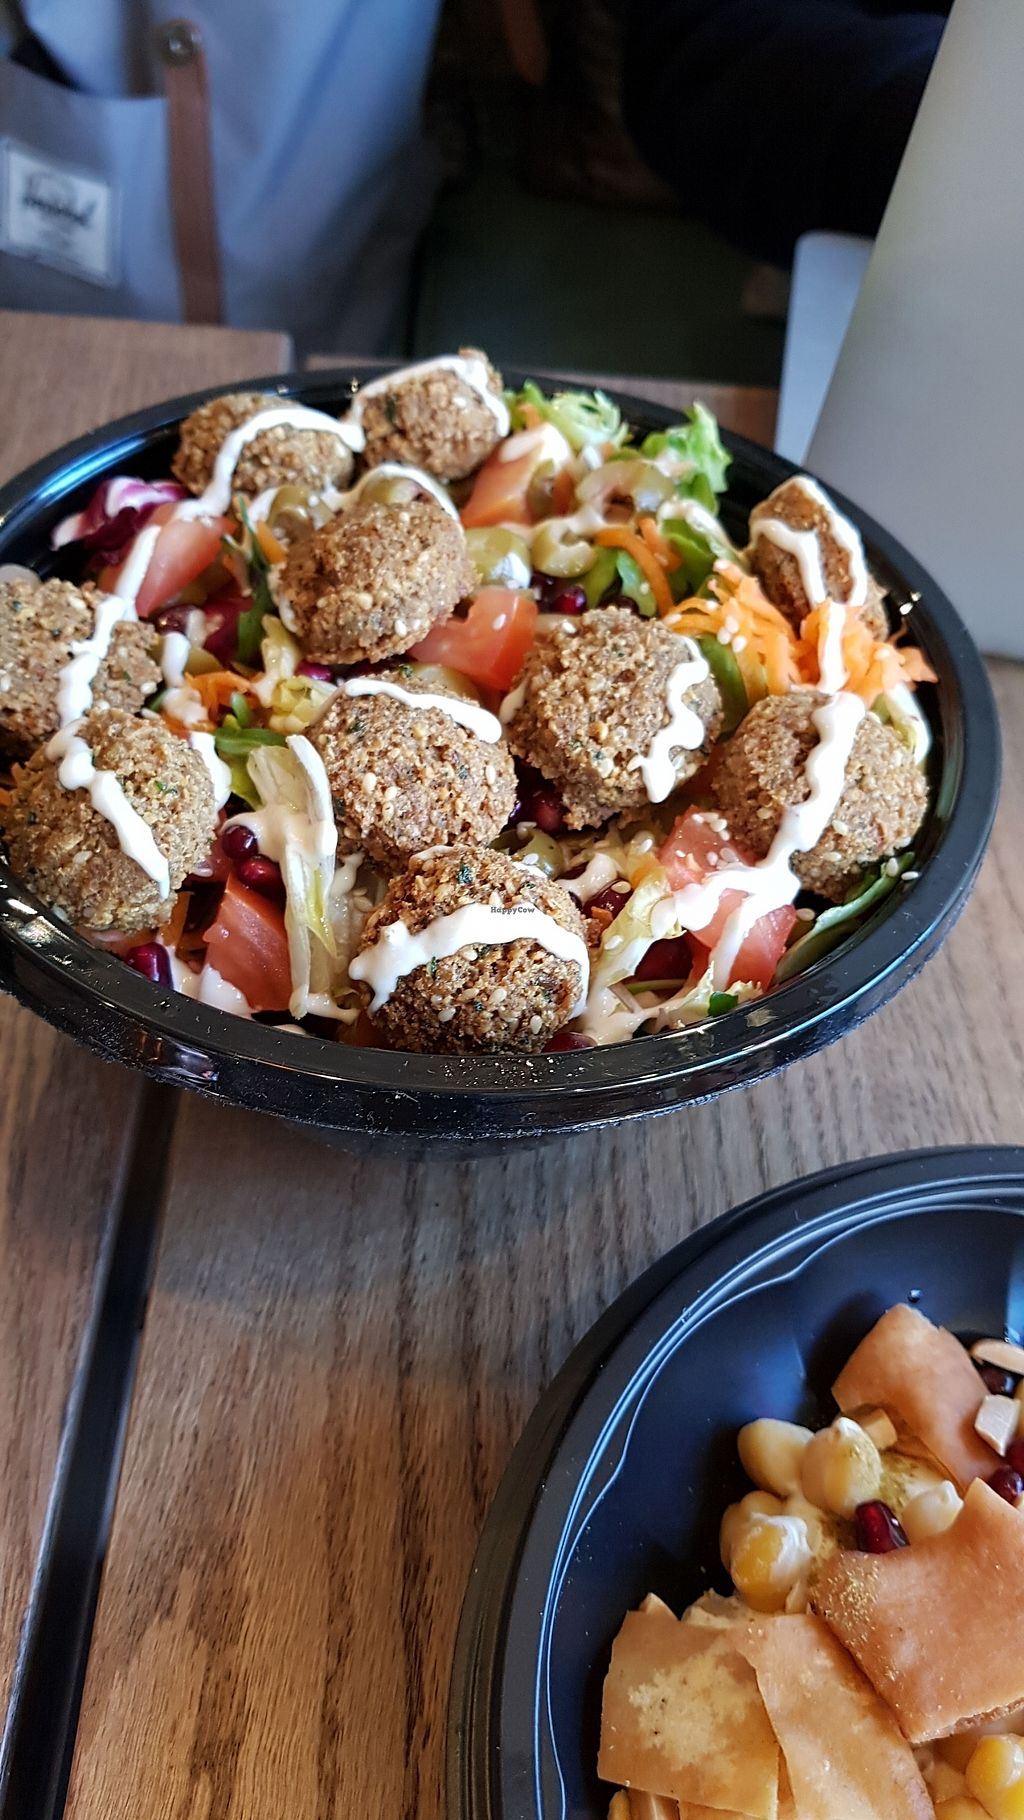 "Photo of Hummus Bar  by <a href=""/members/profile/hummusbargreece"">hummusbargreece</a> <br/>falafel salad <br/> January 29, 2018  - <a href='/contact/abuse/image/110610/352449'>Report</a>"